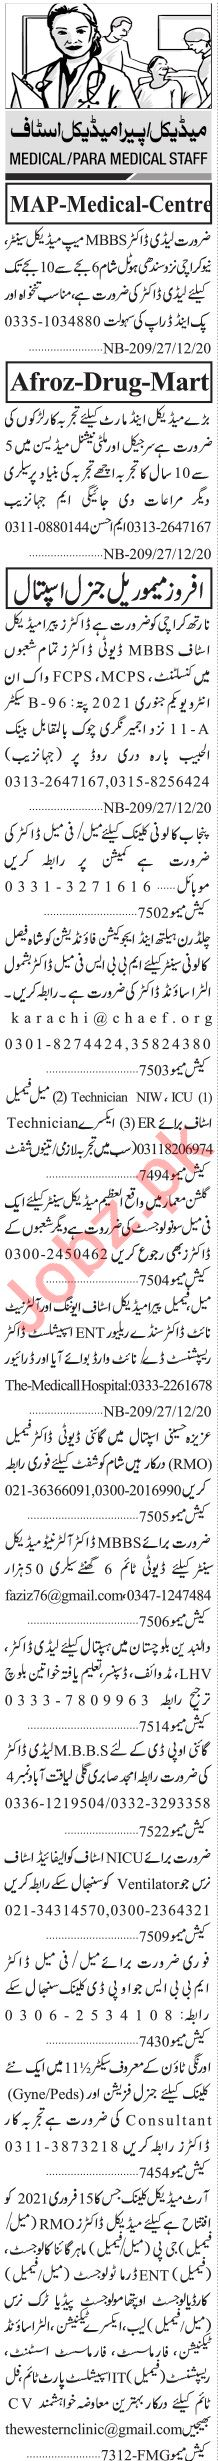 Jang Sunday Classified Ads Dec 2020 for Medical Staff